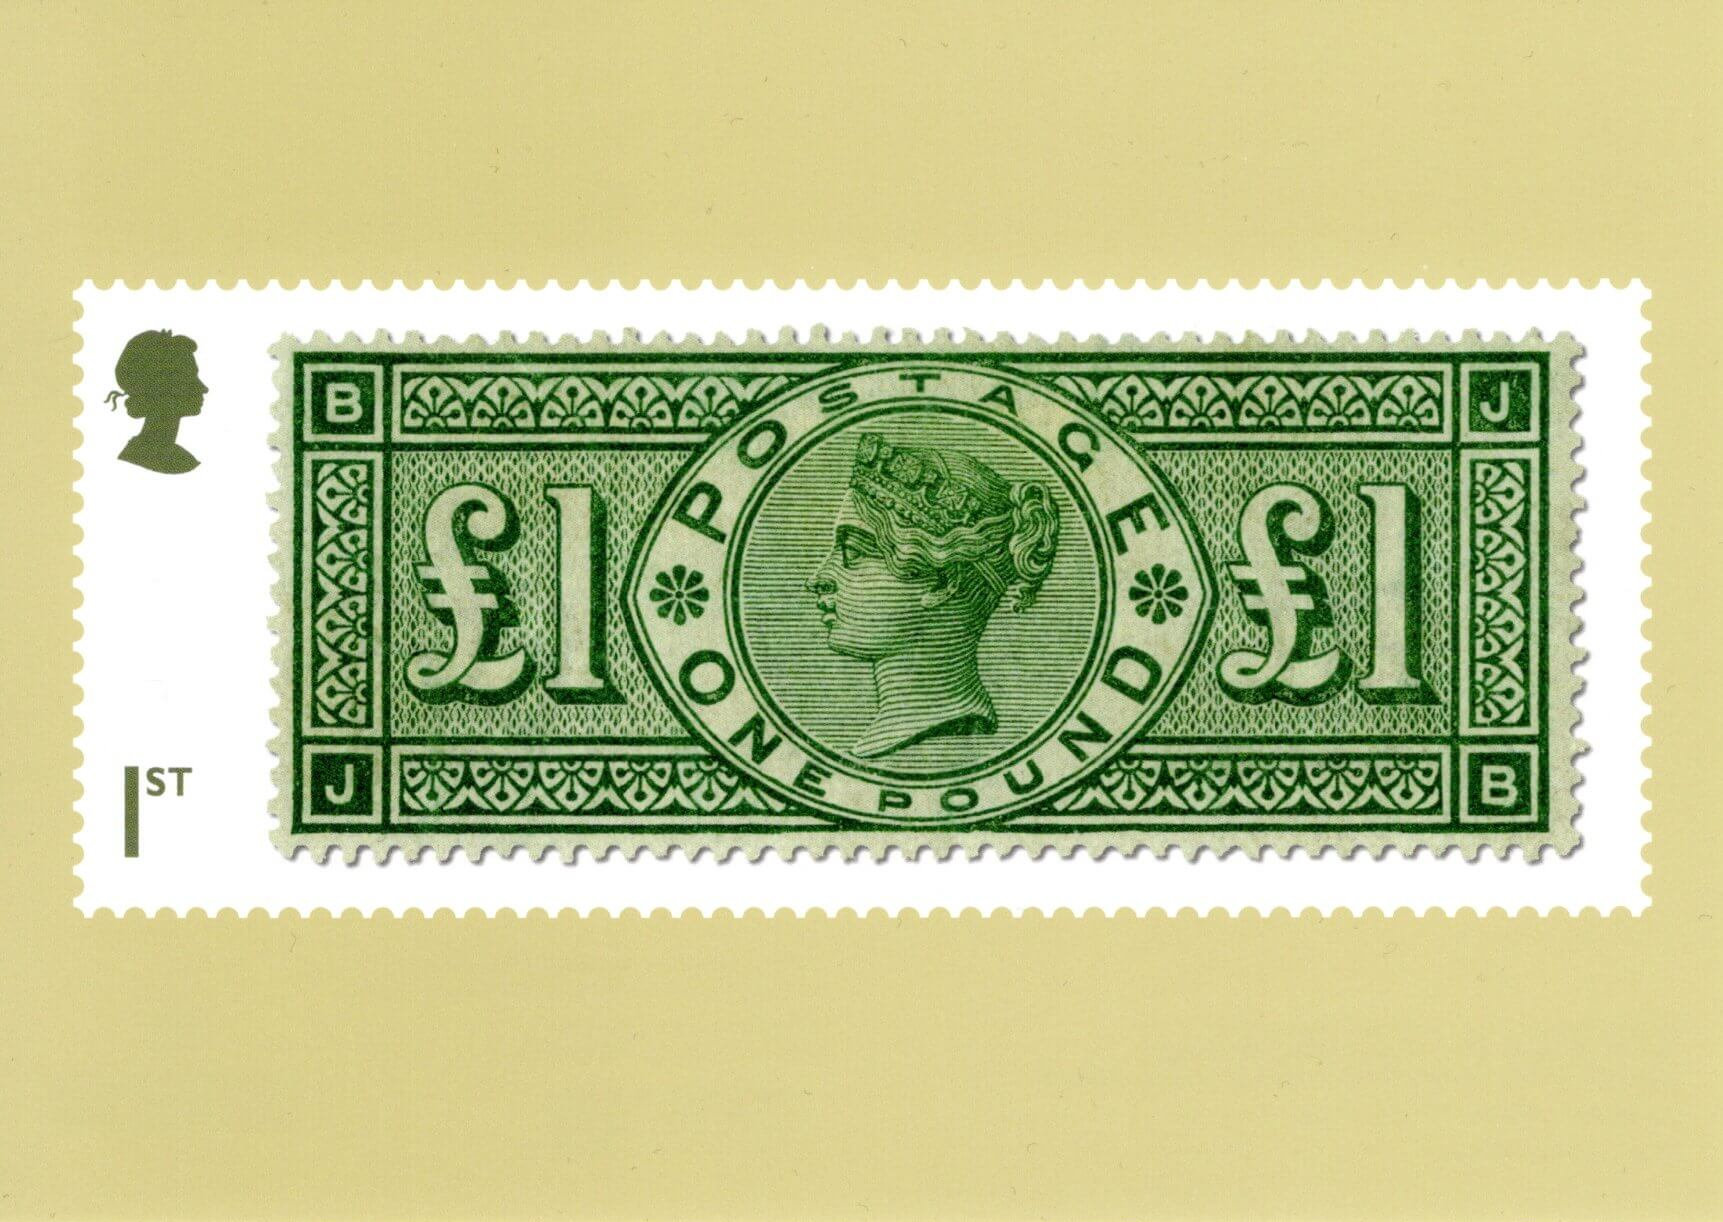 Great Britain - Stamp Classics (January 15, 2019) green £1 Queen Victoria of 1891 PHQ card